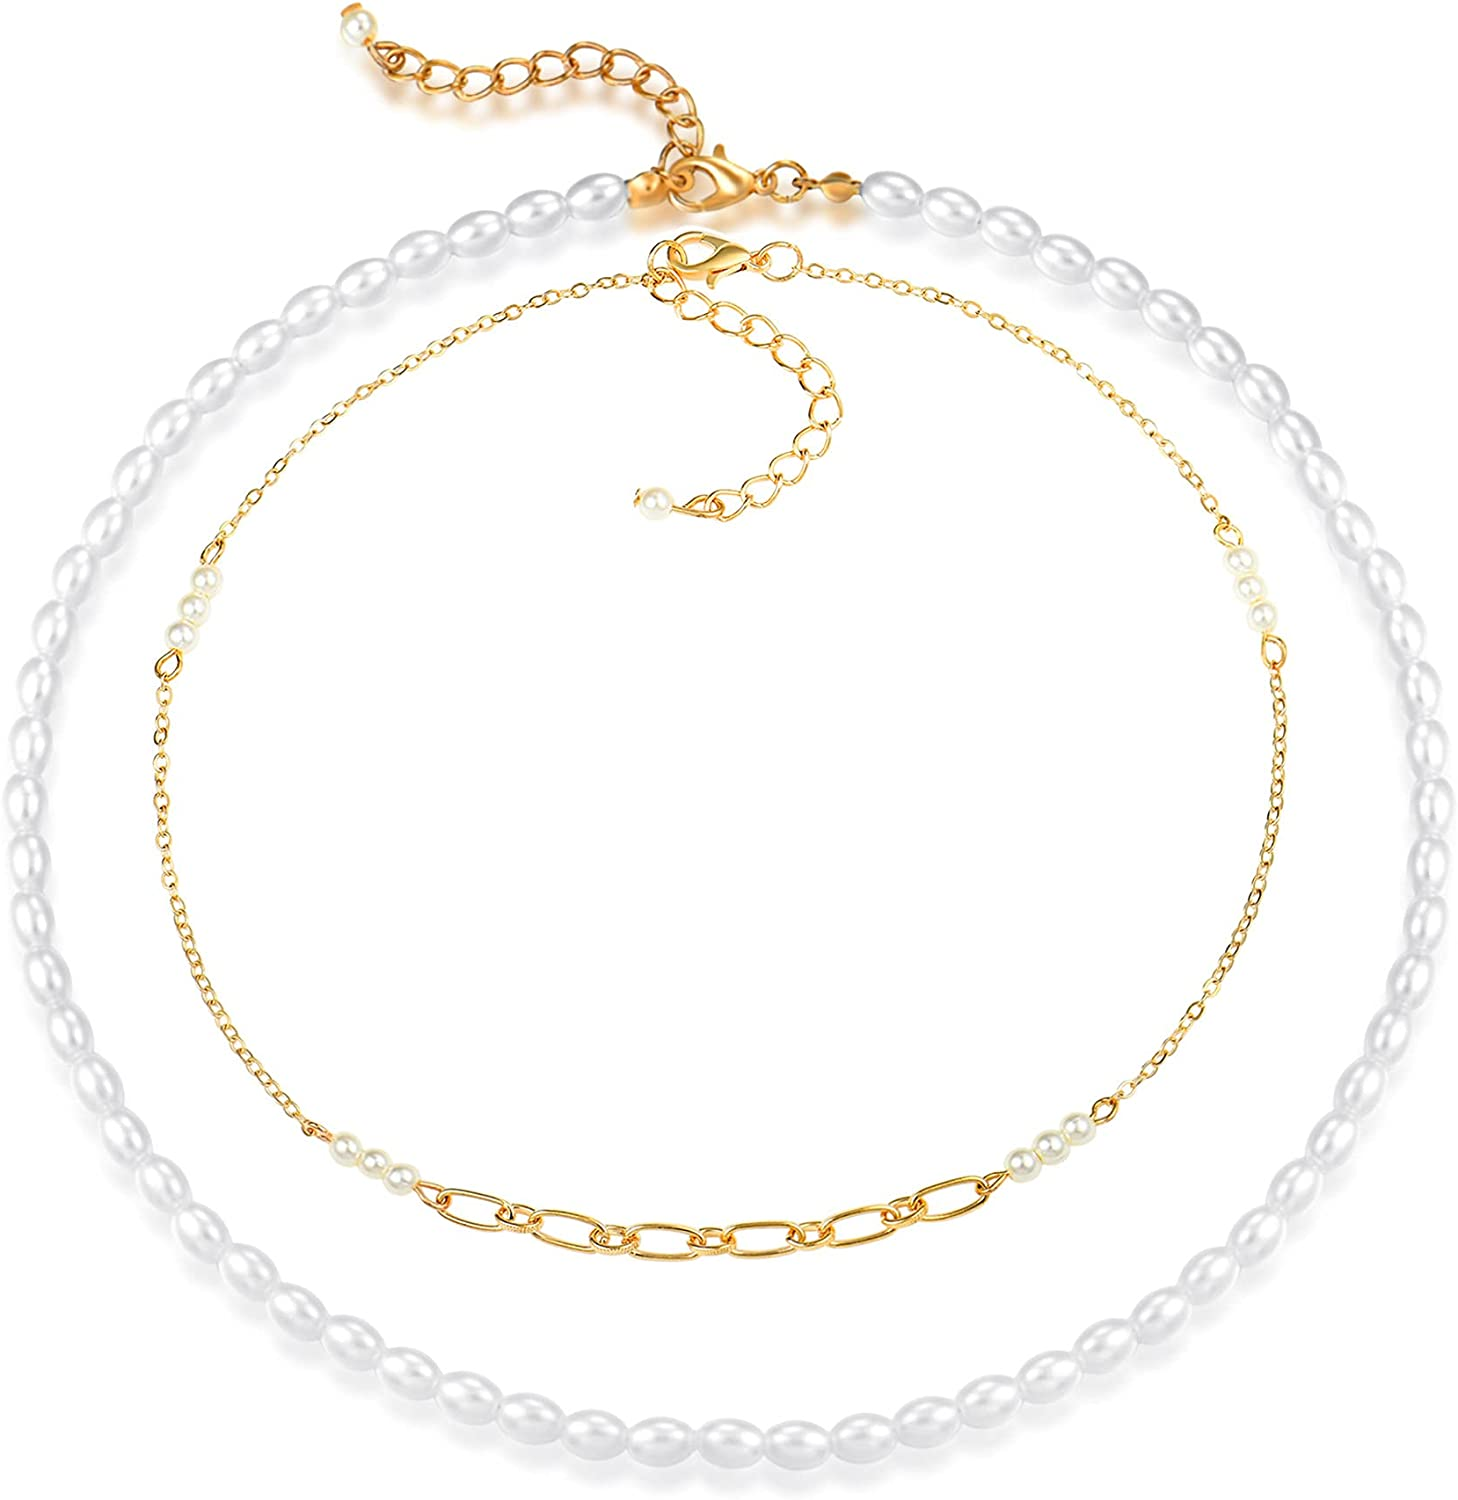 CUSUA 2 Pcs Pearl Choker Necklaces Gold Now on sale 14K for Women Ranking TOP3 3 Plated